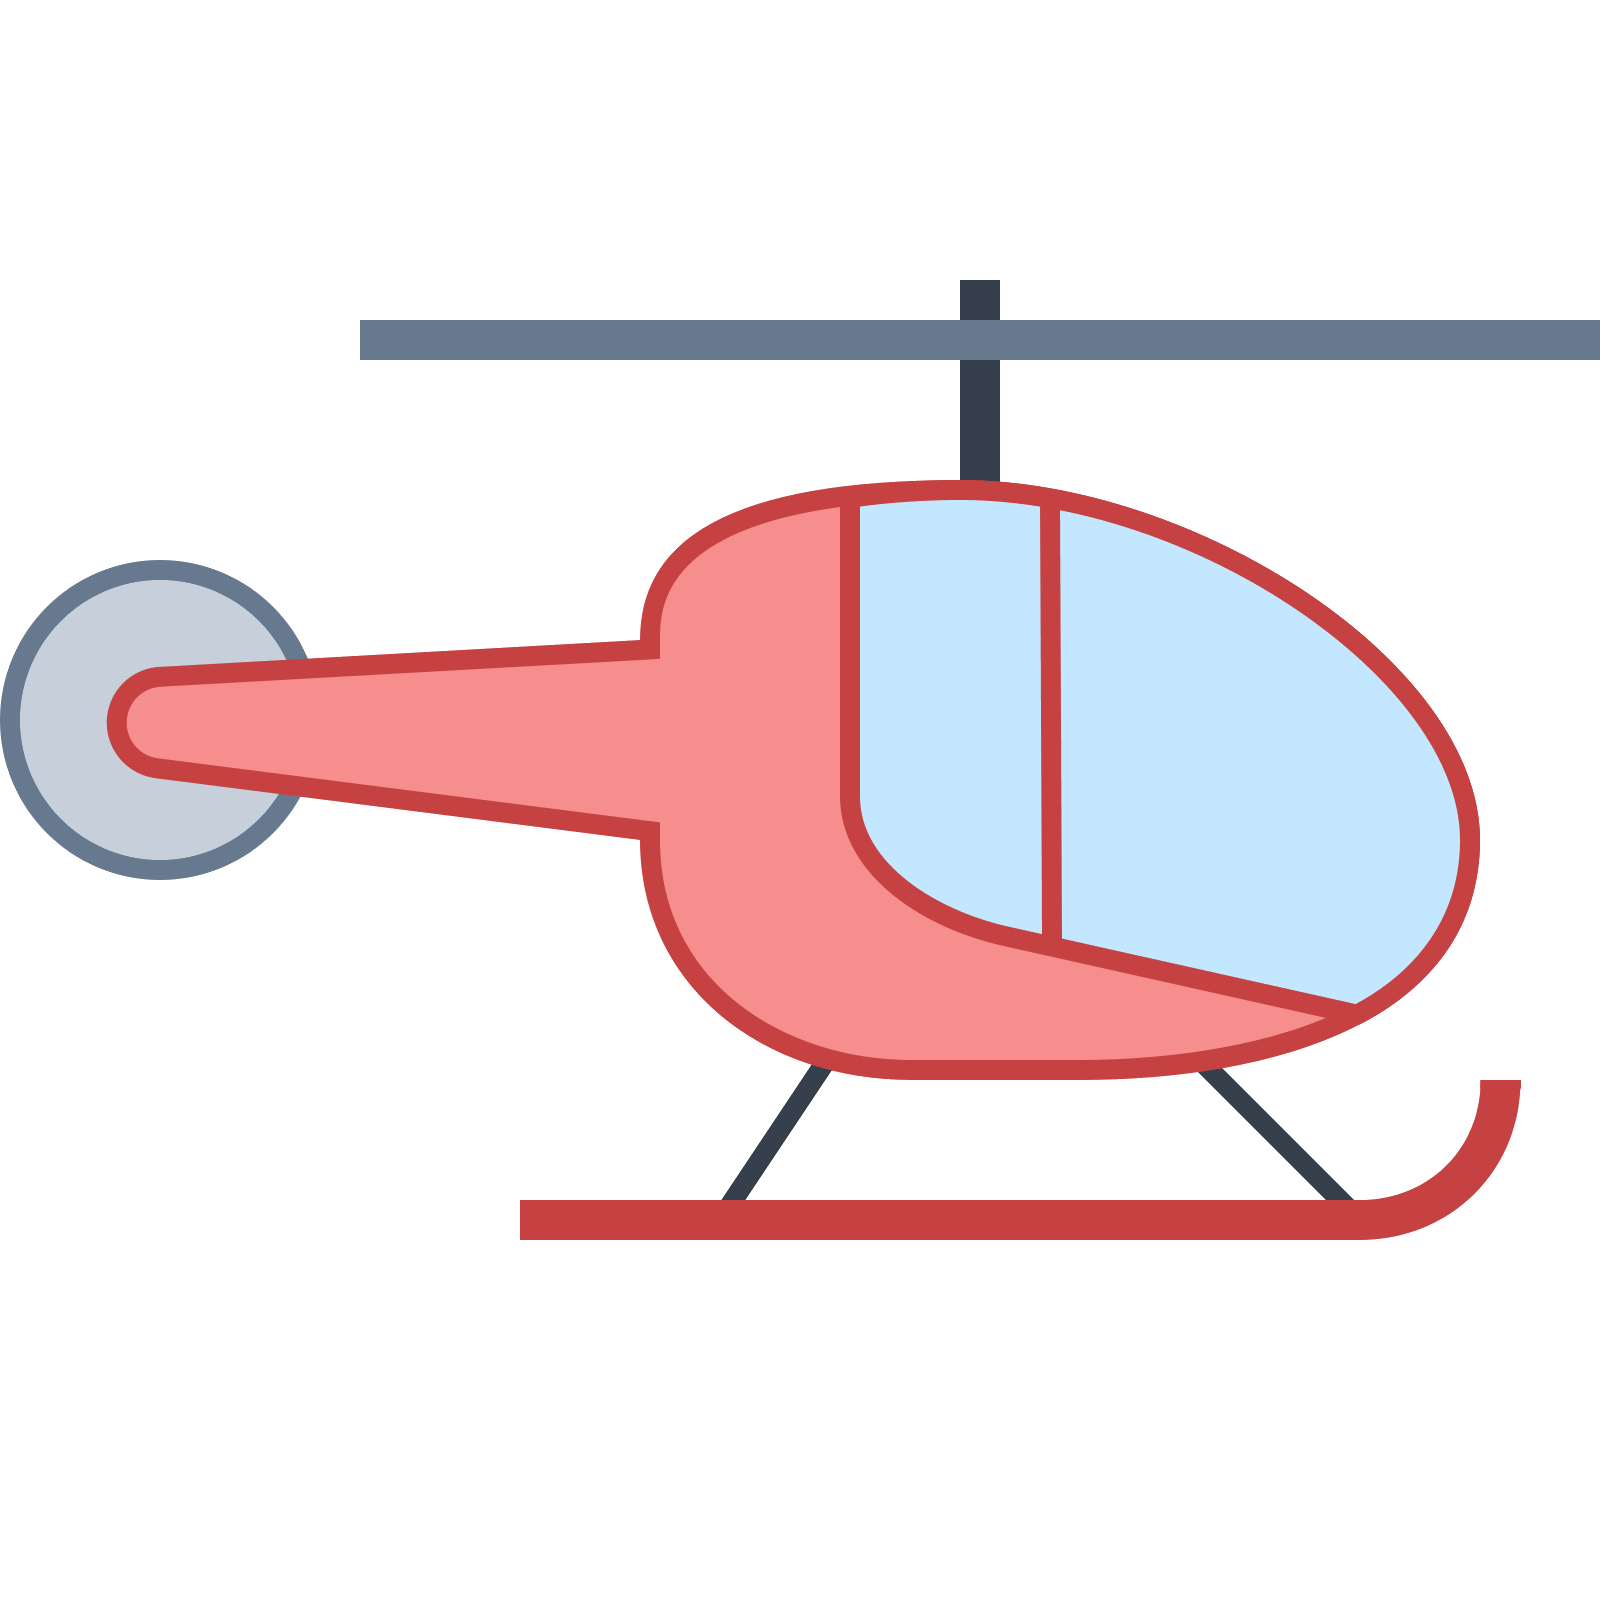 Helicopter clipart attack helicopter. Clip art transportation airplane